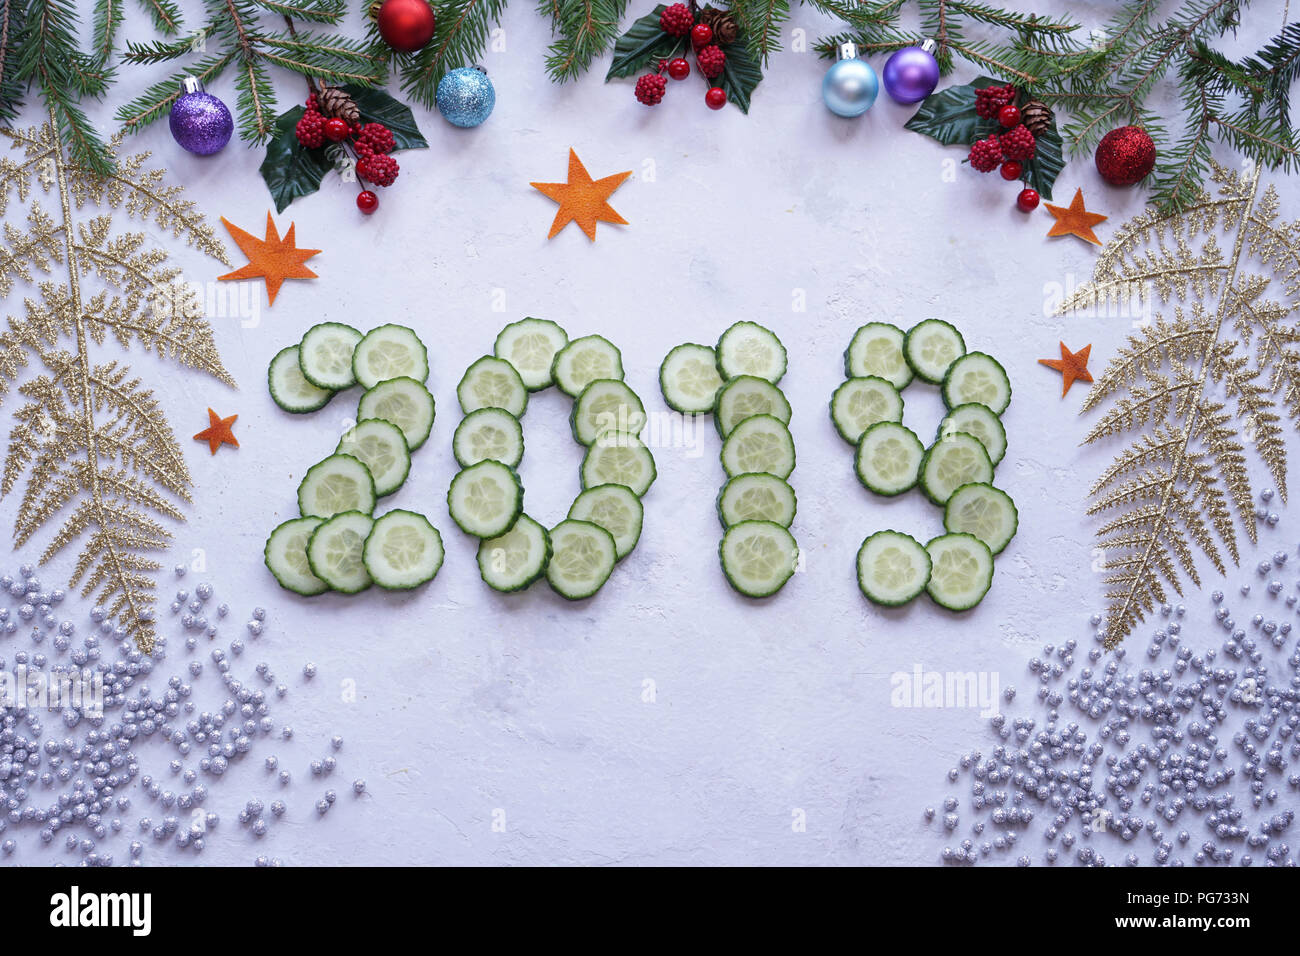 New Year's collage, healthy lifestyle, figures from cucumber, spruce branches, traditional Christmas holiday - Stock Image